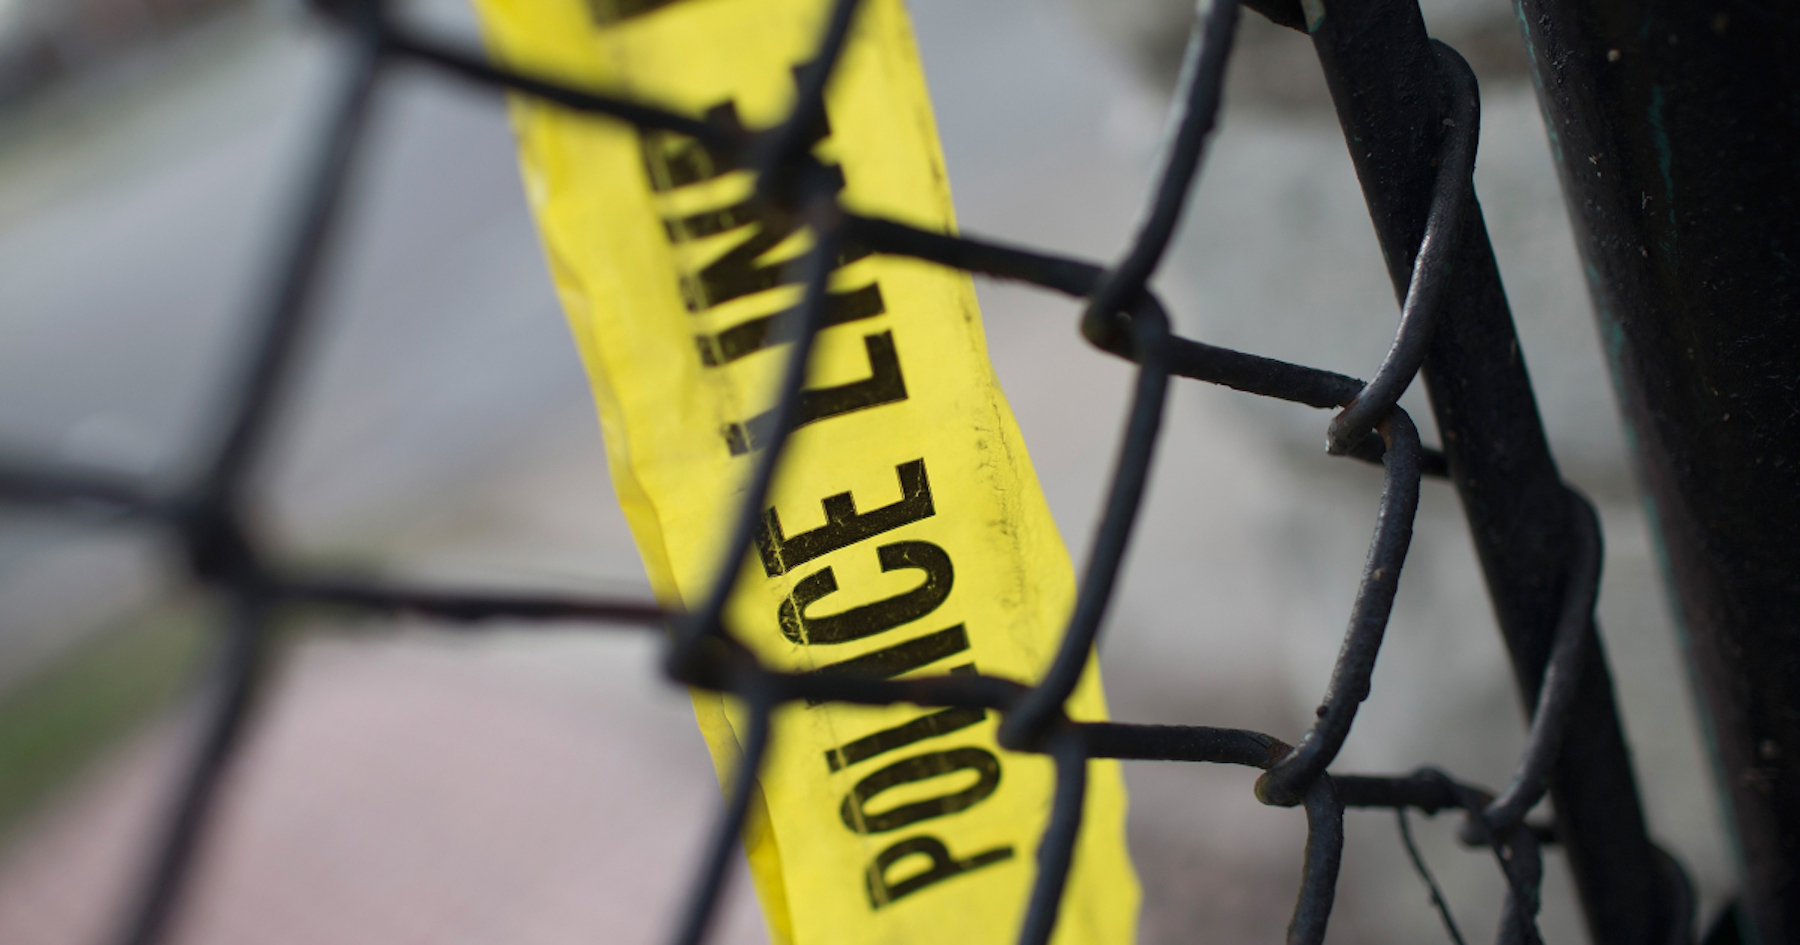 A 15-year-old wounded in a shooting Sept. 9, 2021, in Fernwood.